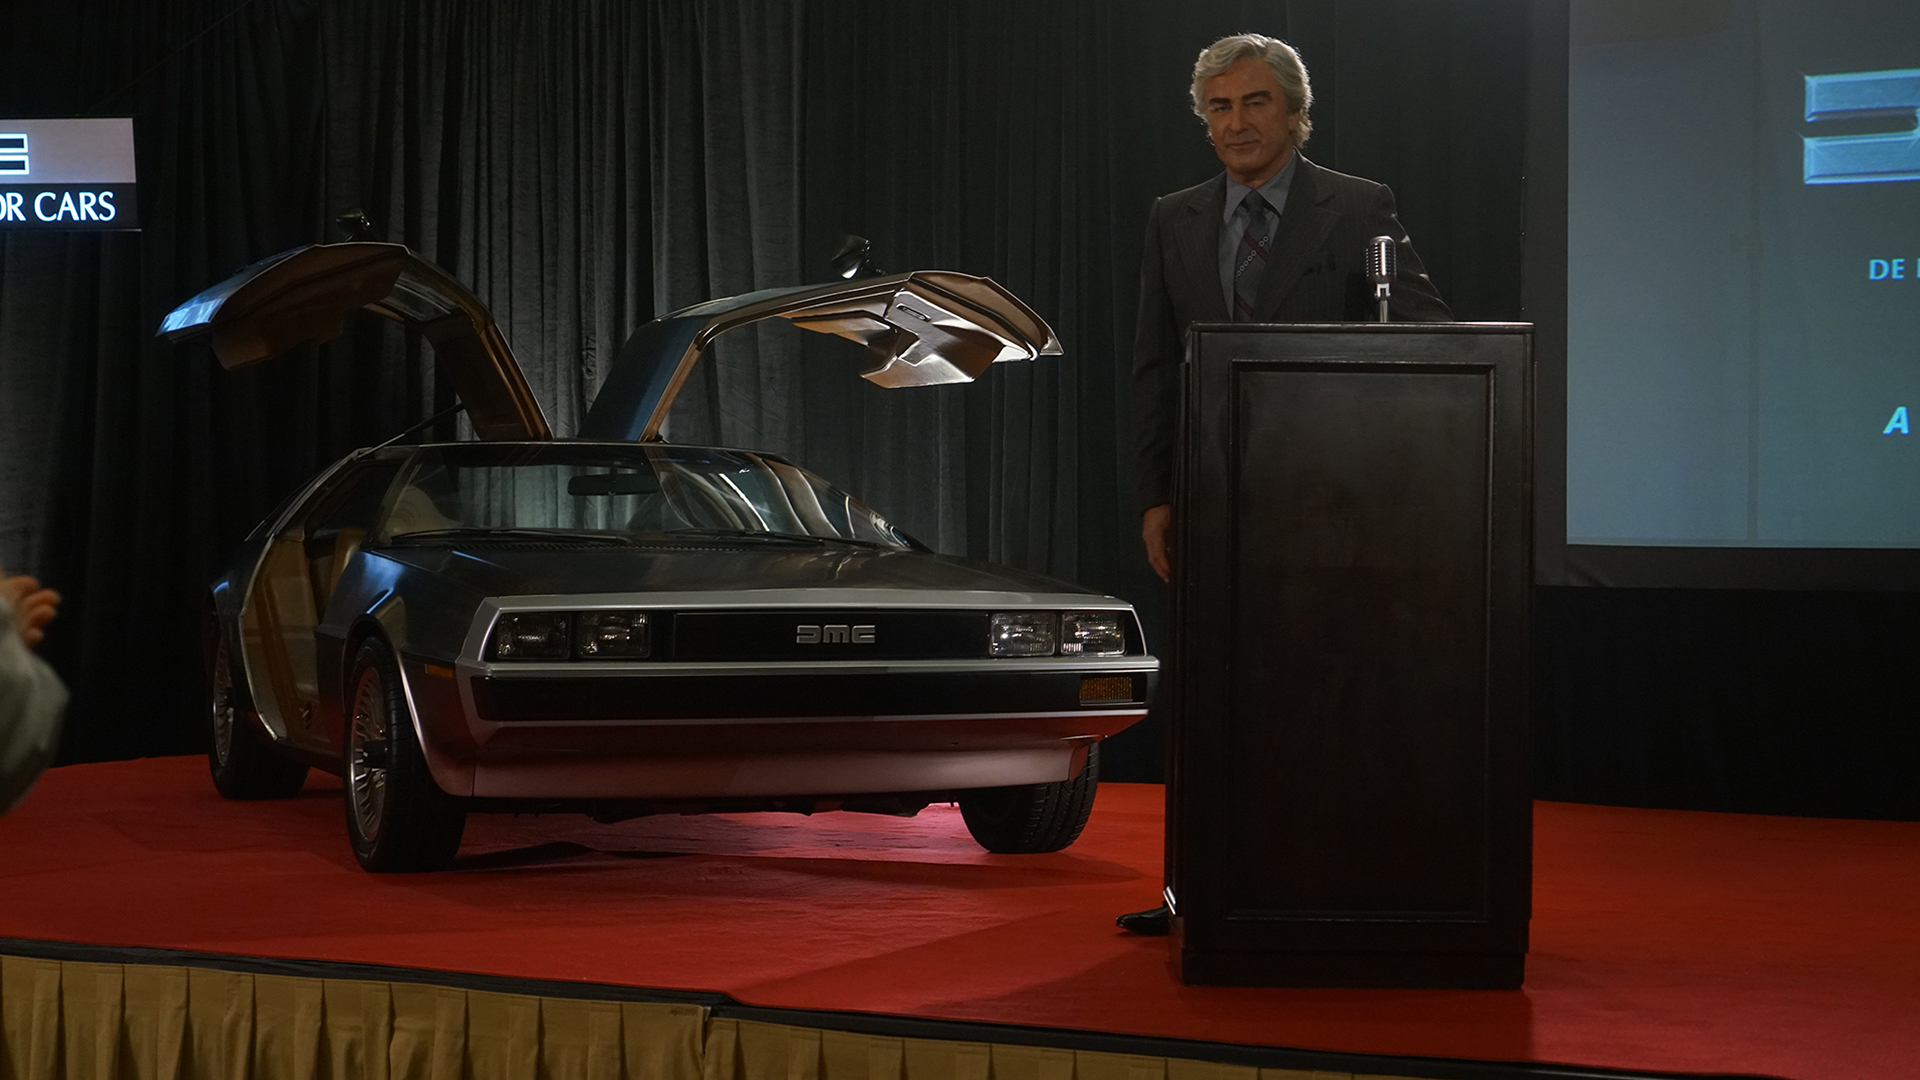 Framing John DeLorean – Back to The Future